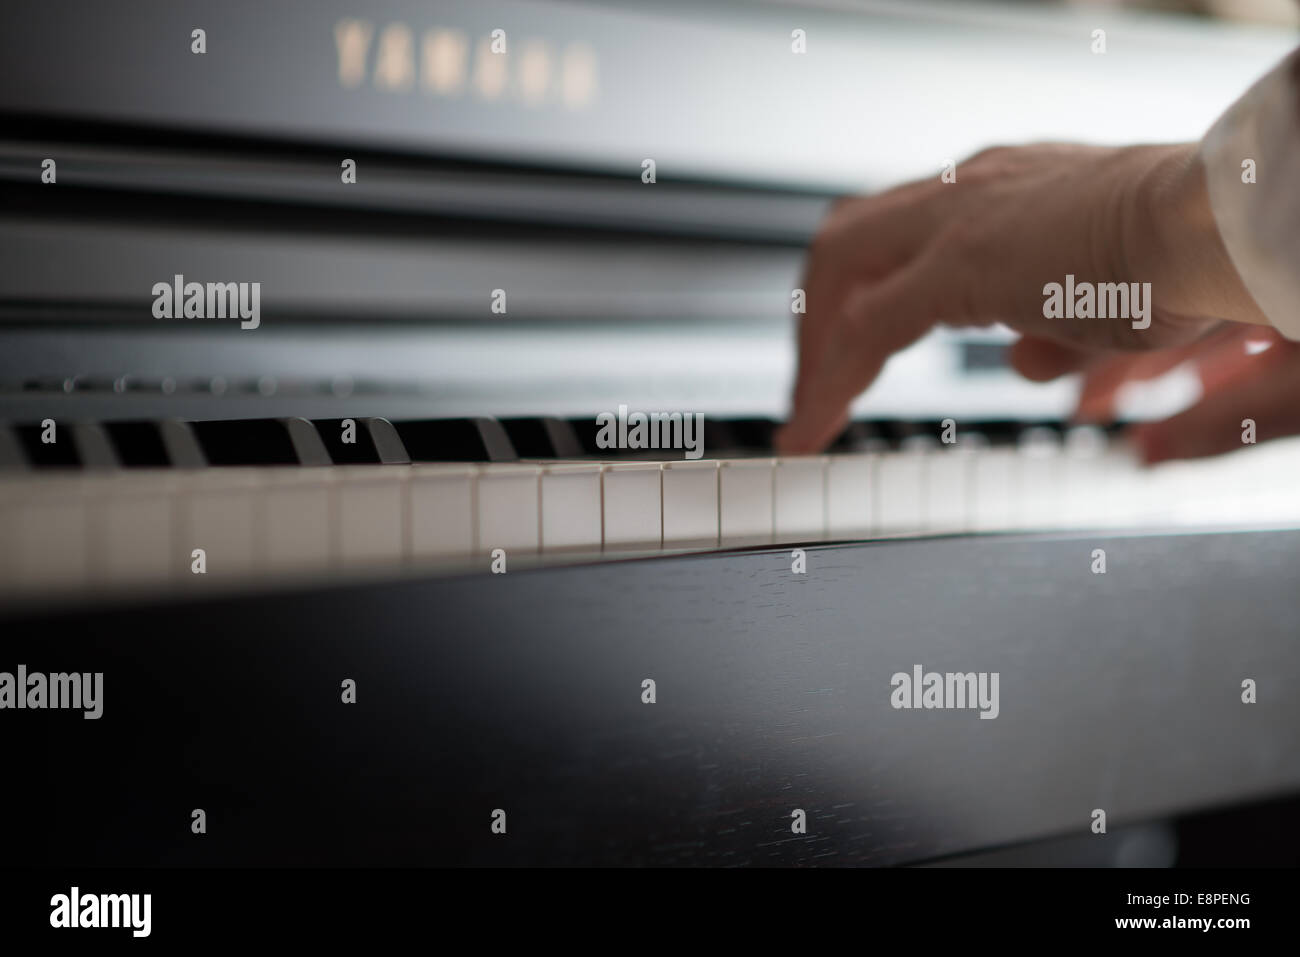 Practice and learn Piano - Stock Image